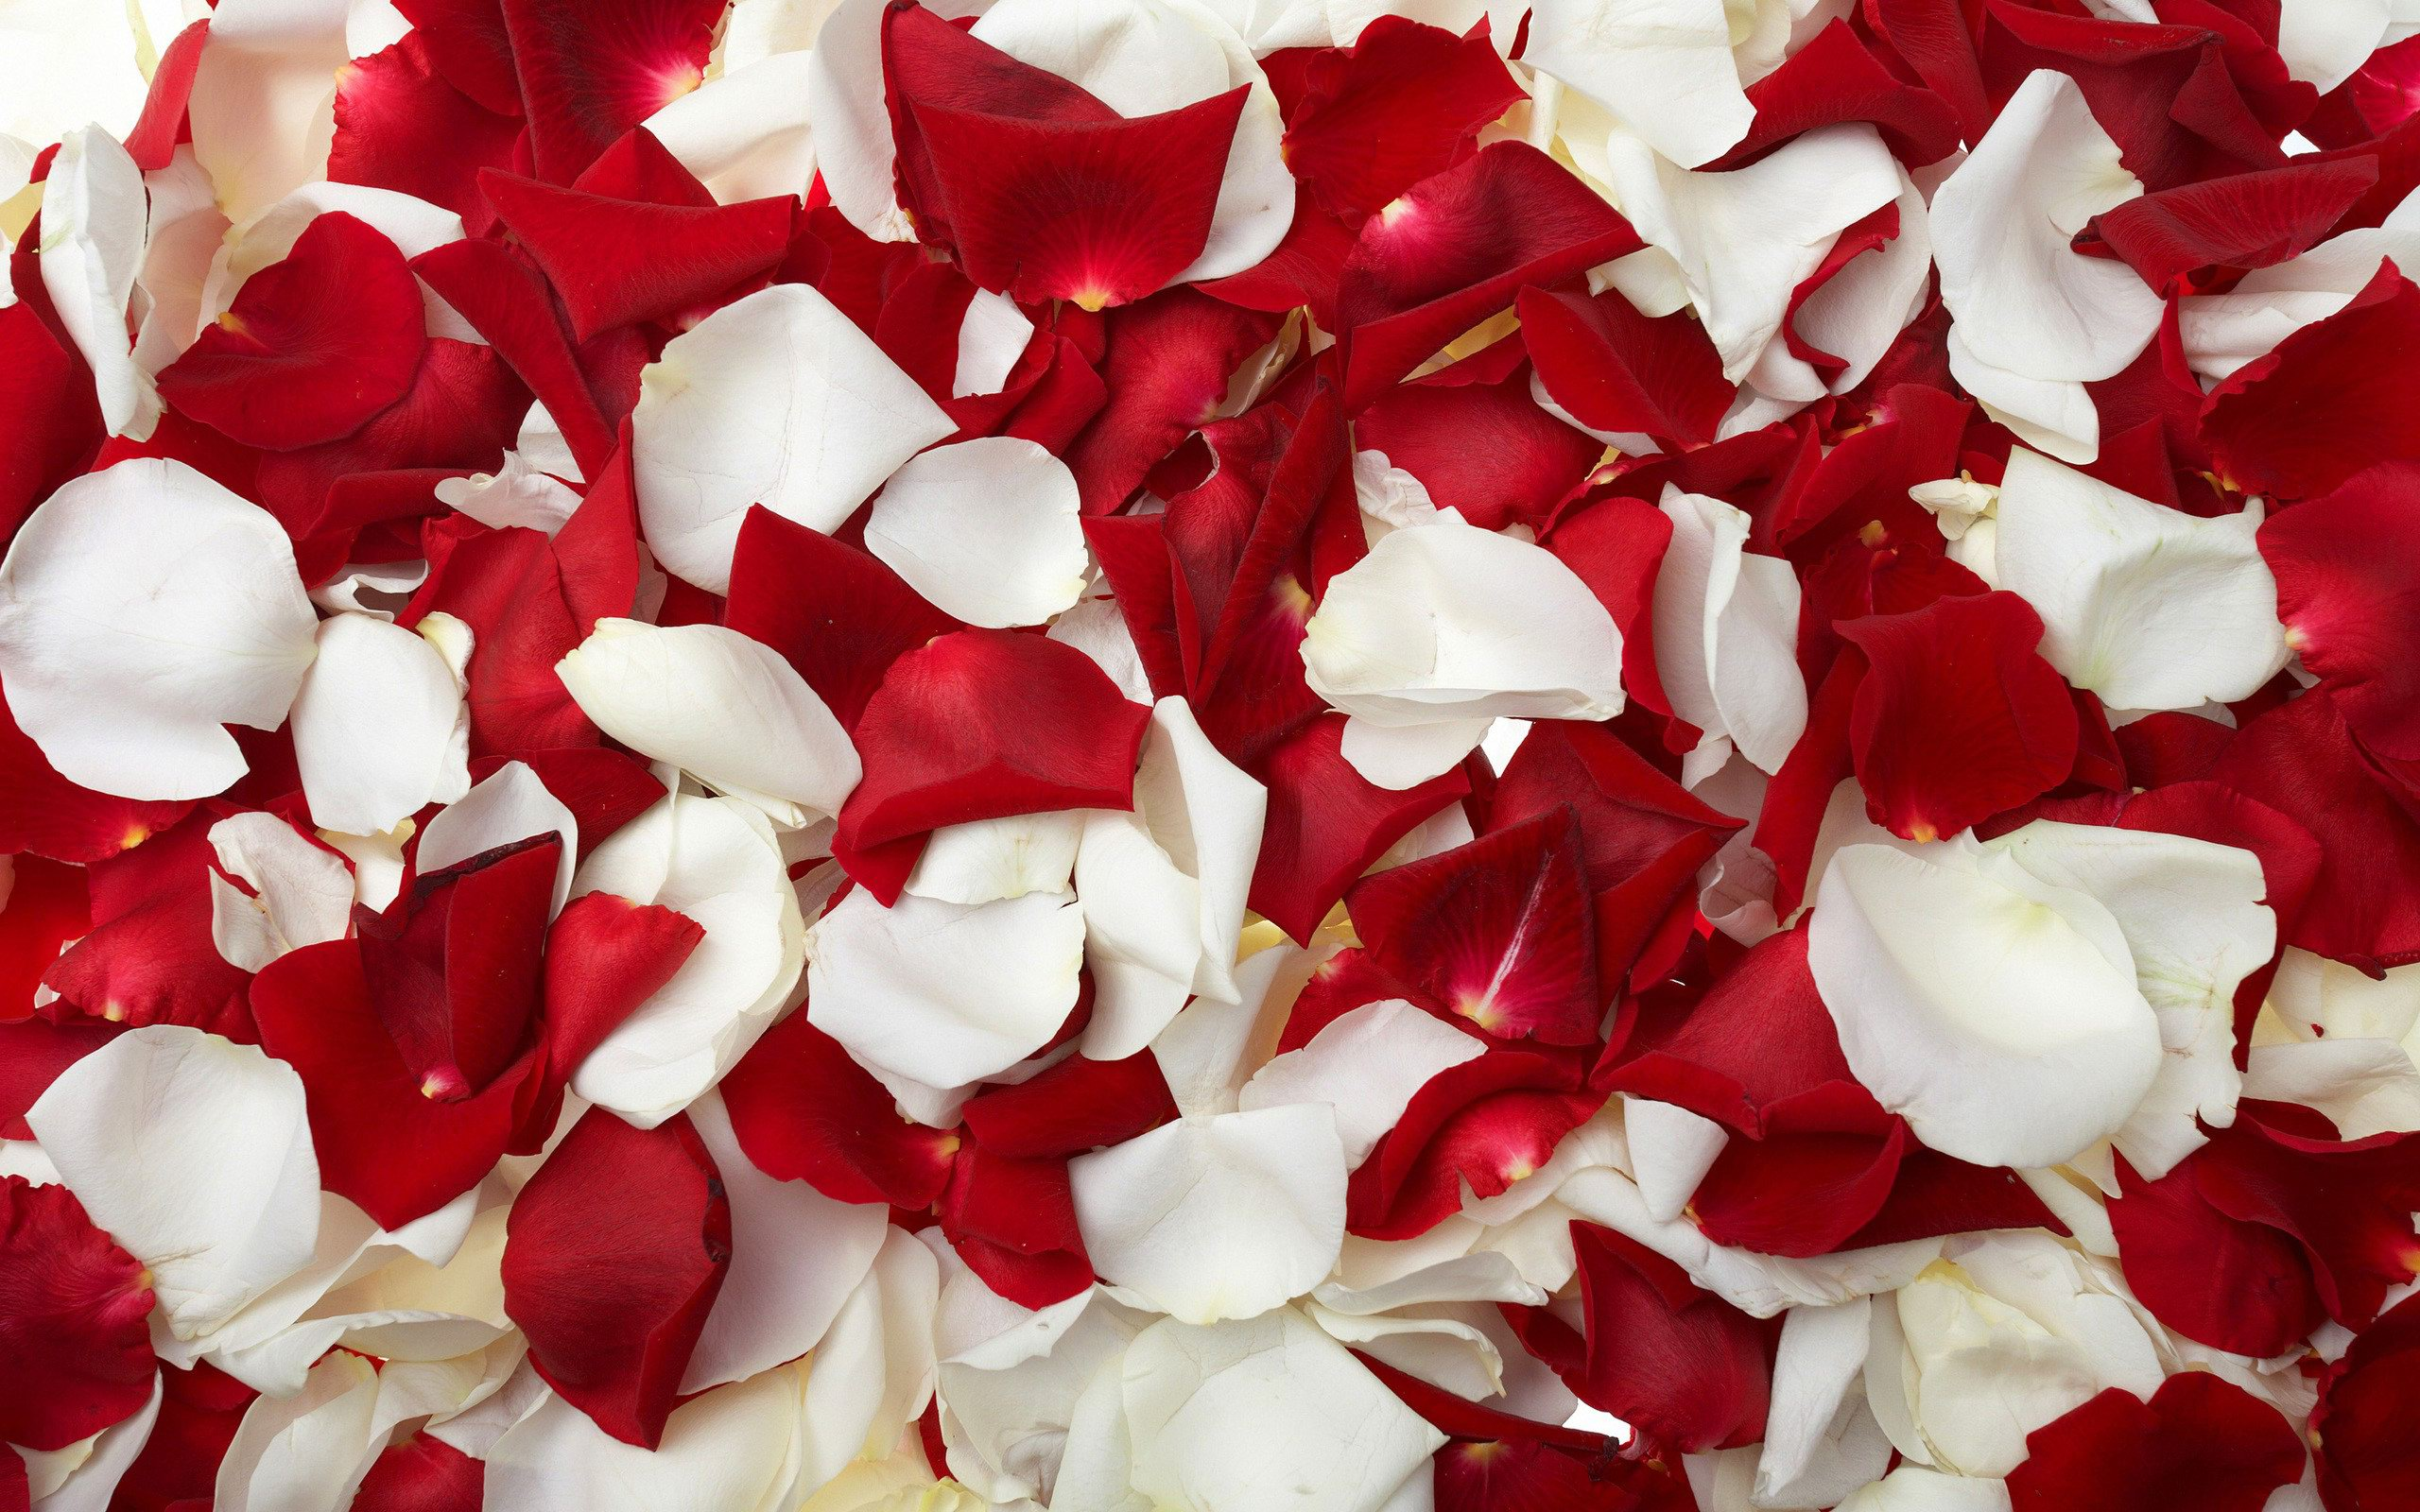 Wallpapers Rose Petals Images